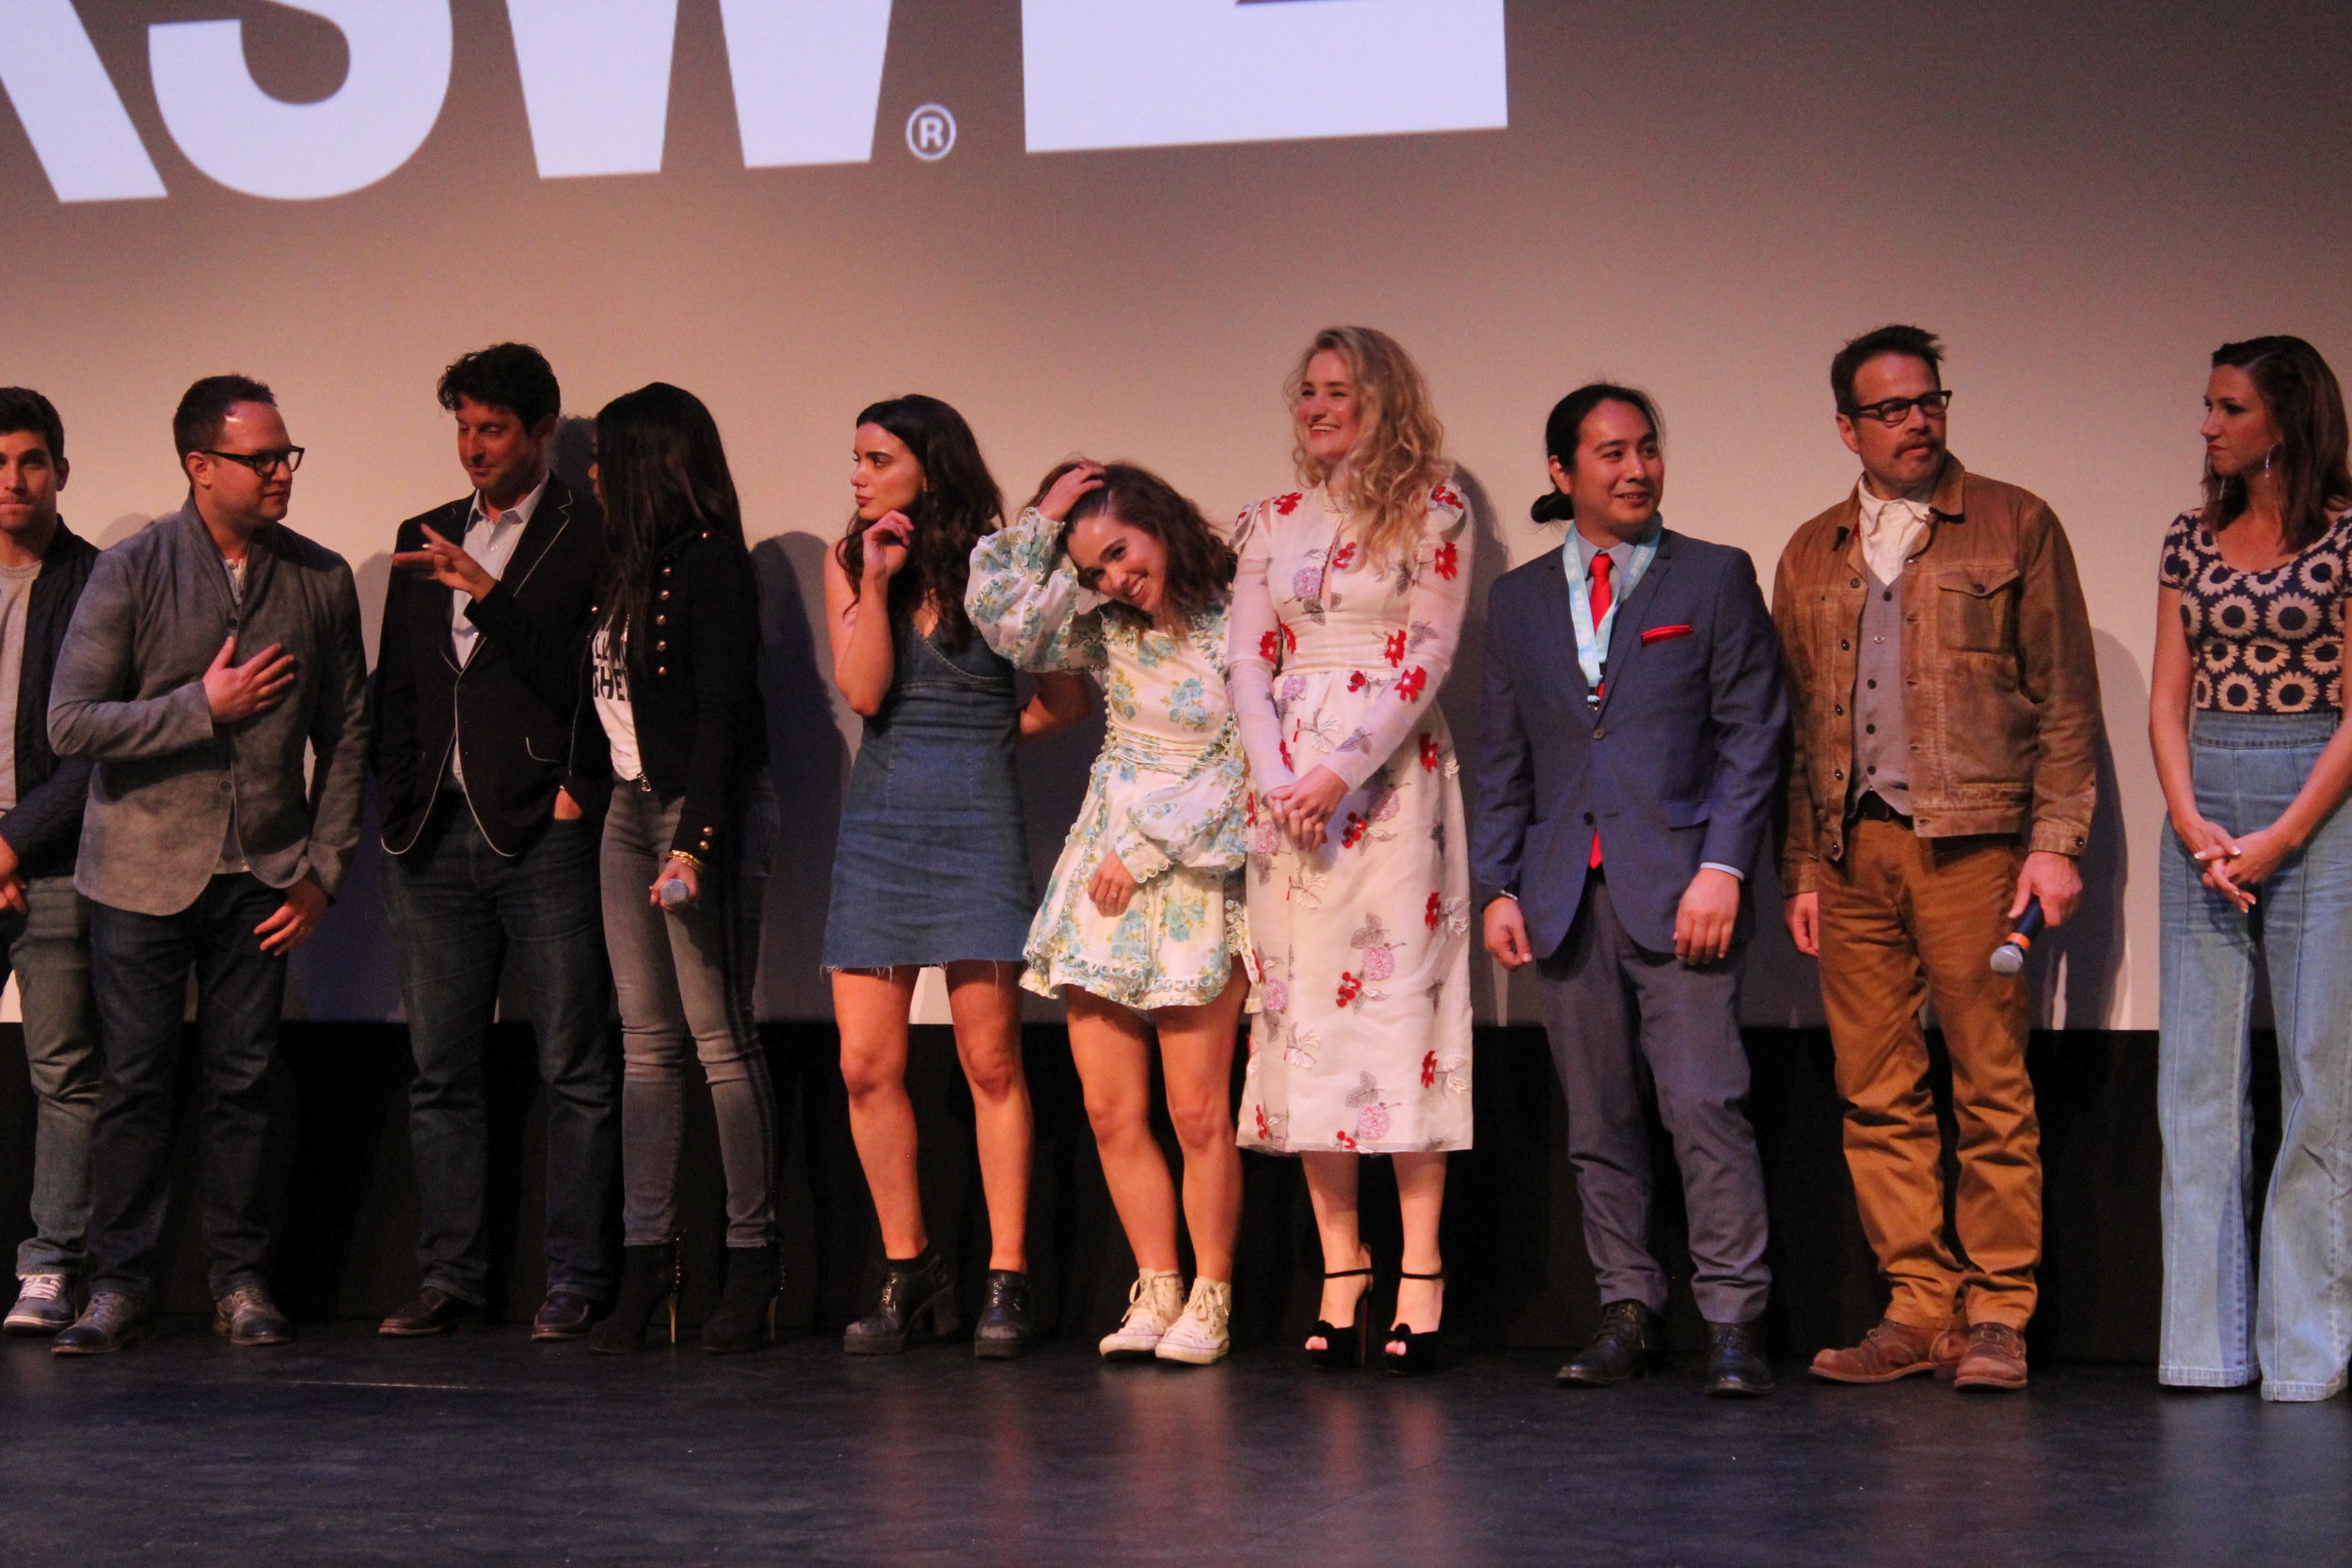 The cast of  Support the Girls  onstage at the film's world premiere at the ZACH Theater in Austin, TX. Photo by Alyson Fluhart.